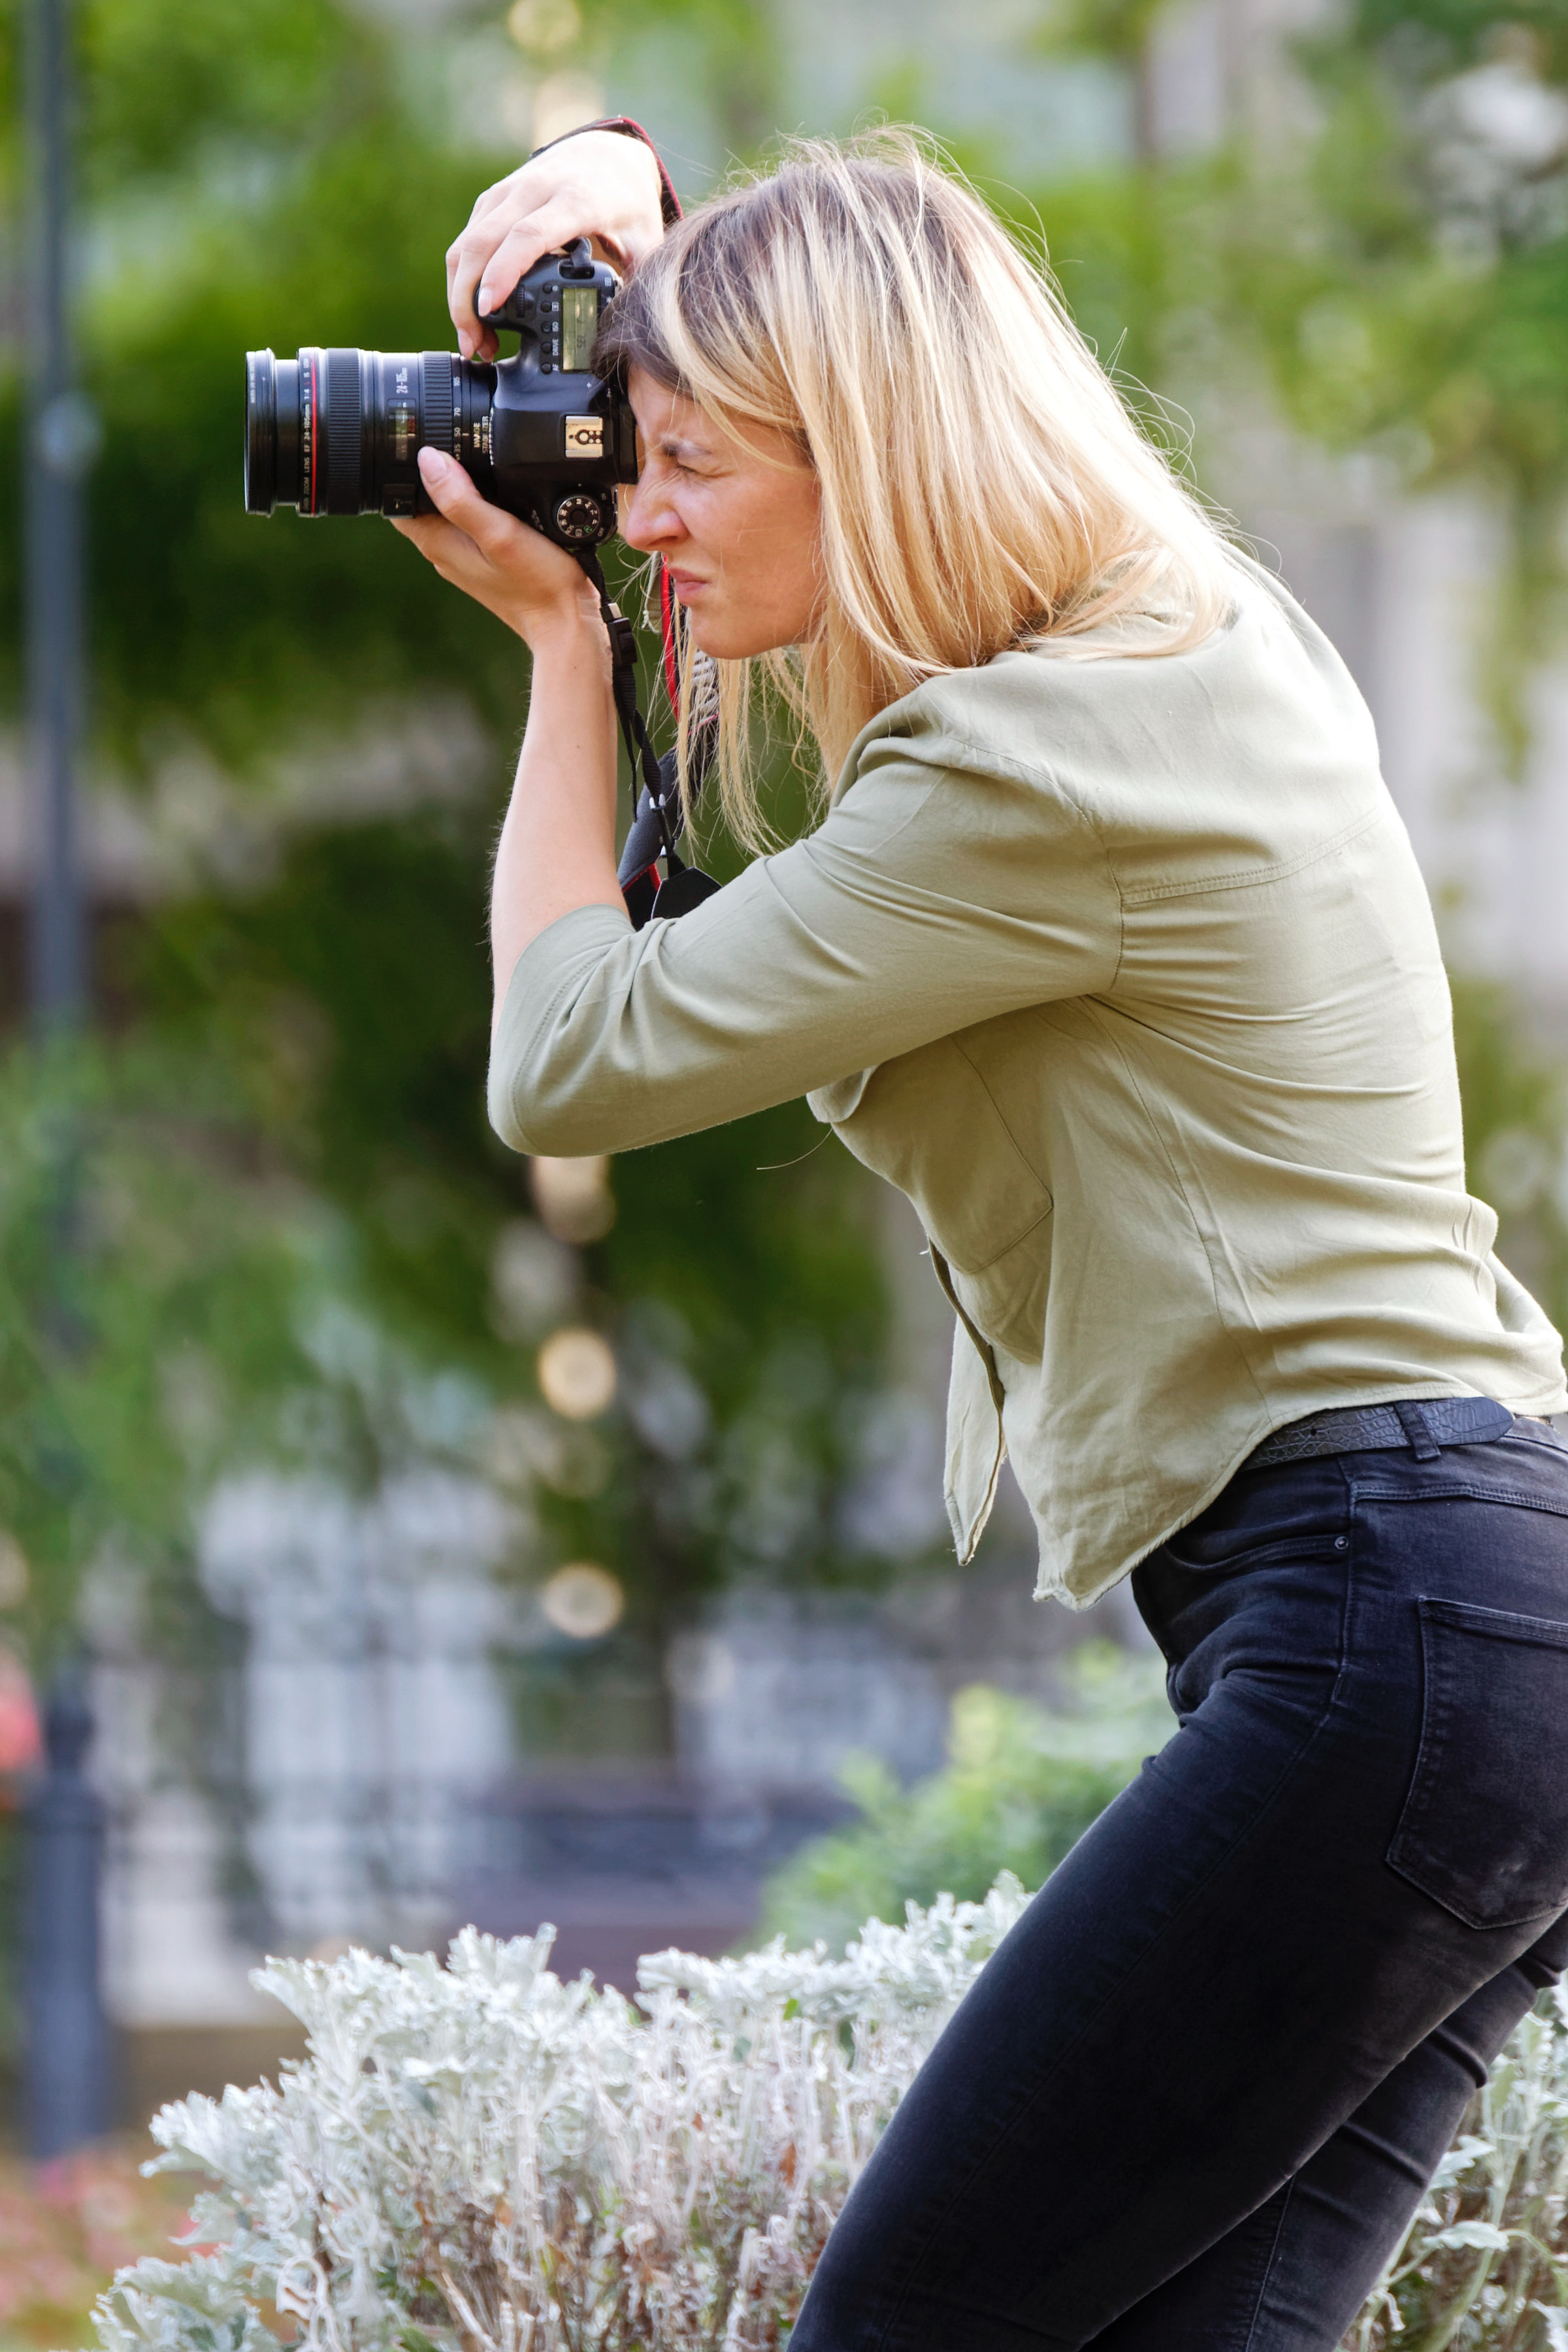 lens filters for photography 10 image